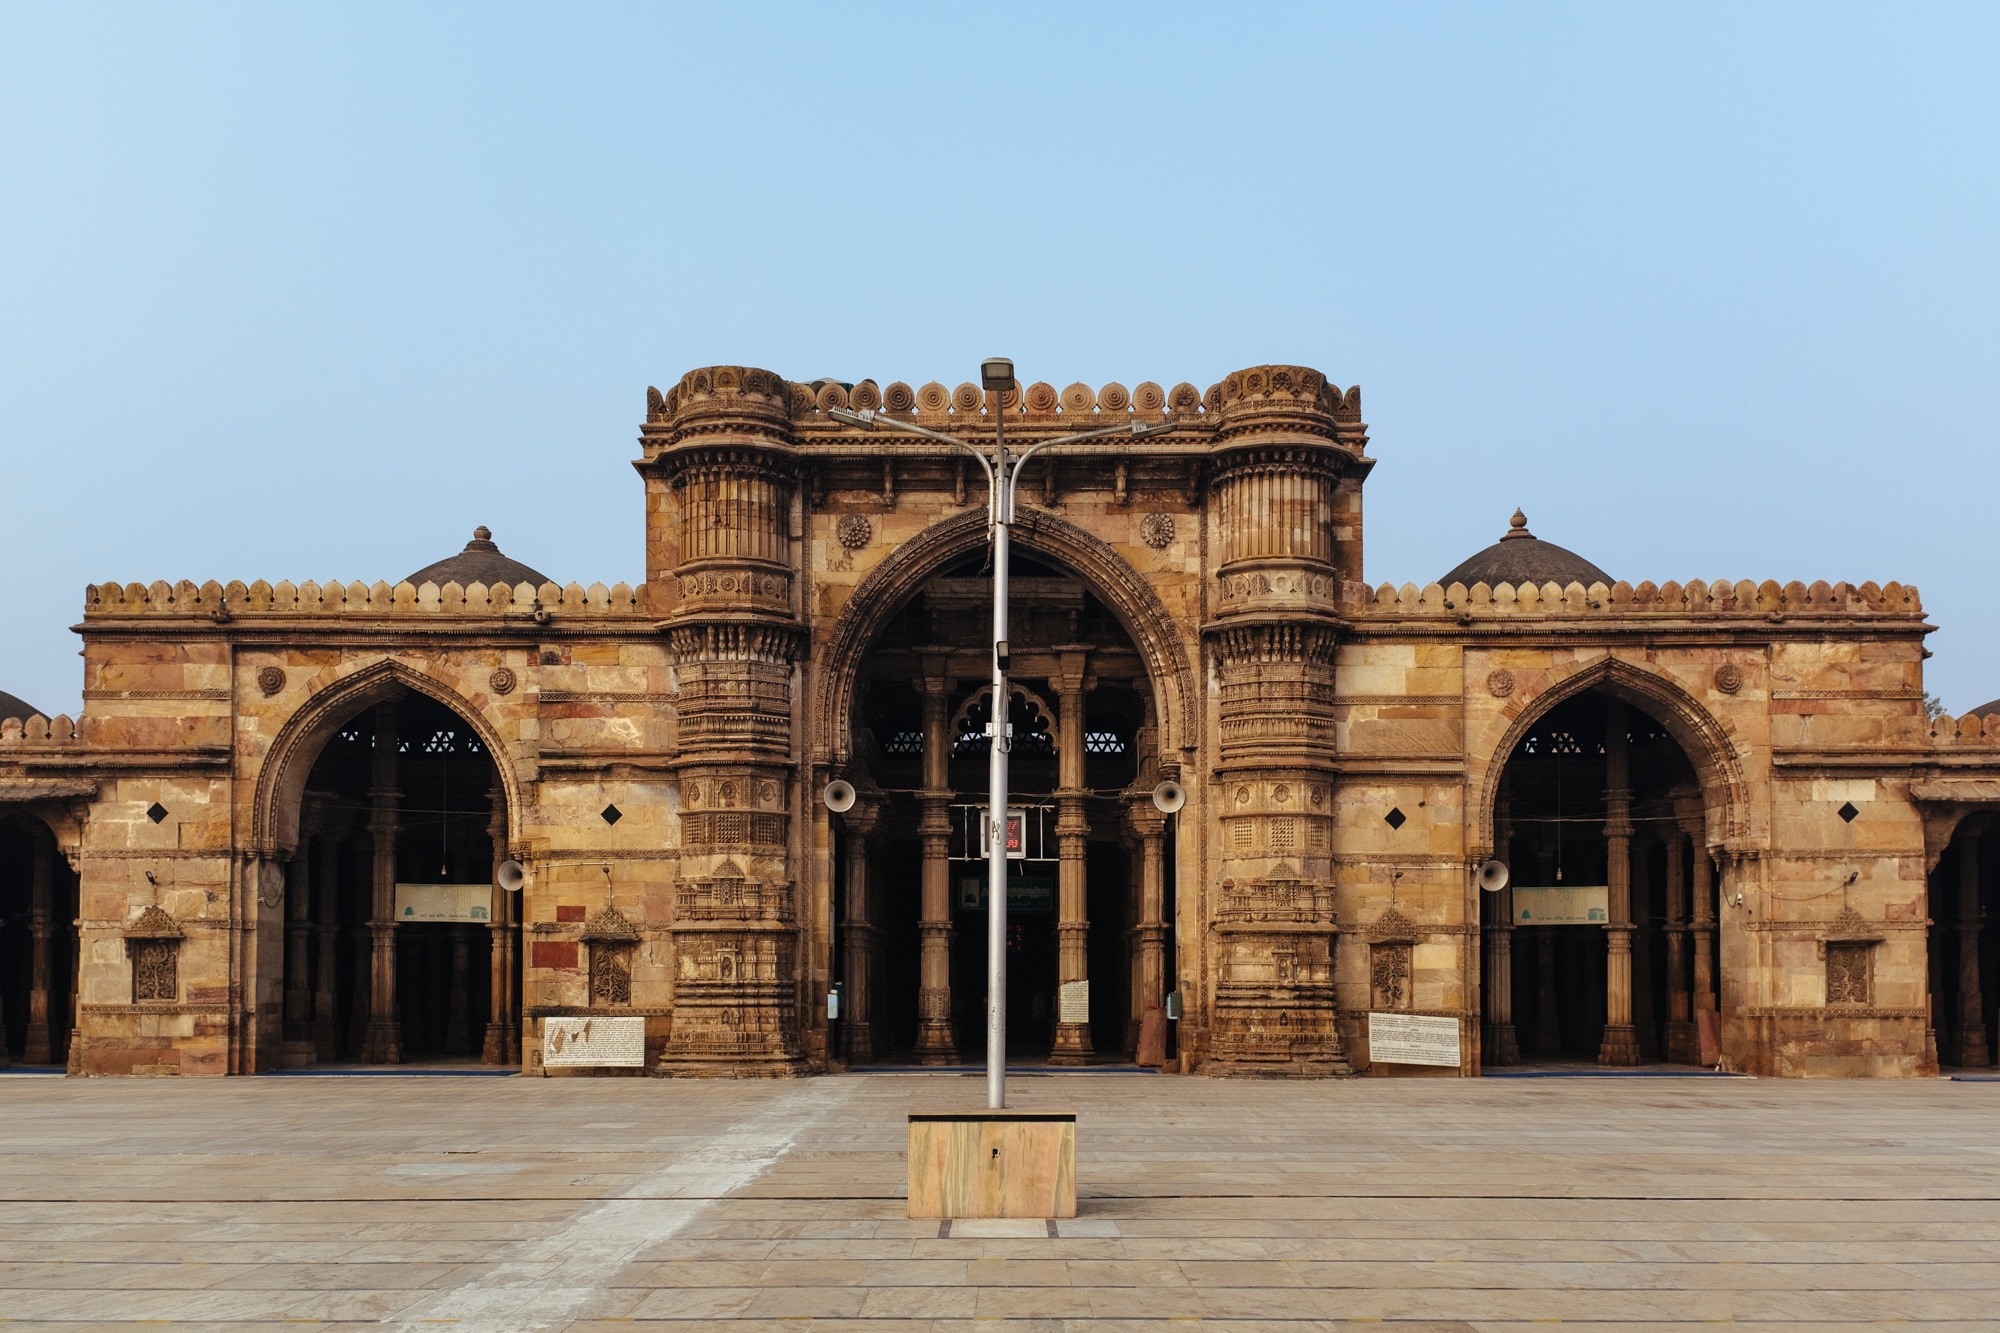 Built of yellow sandstones, the Jama Mosque was built by King Ahmad Shah - I, the founder of Ahmedabad.